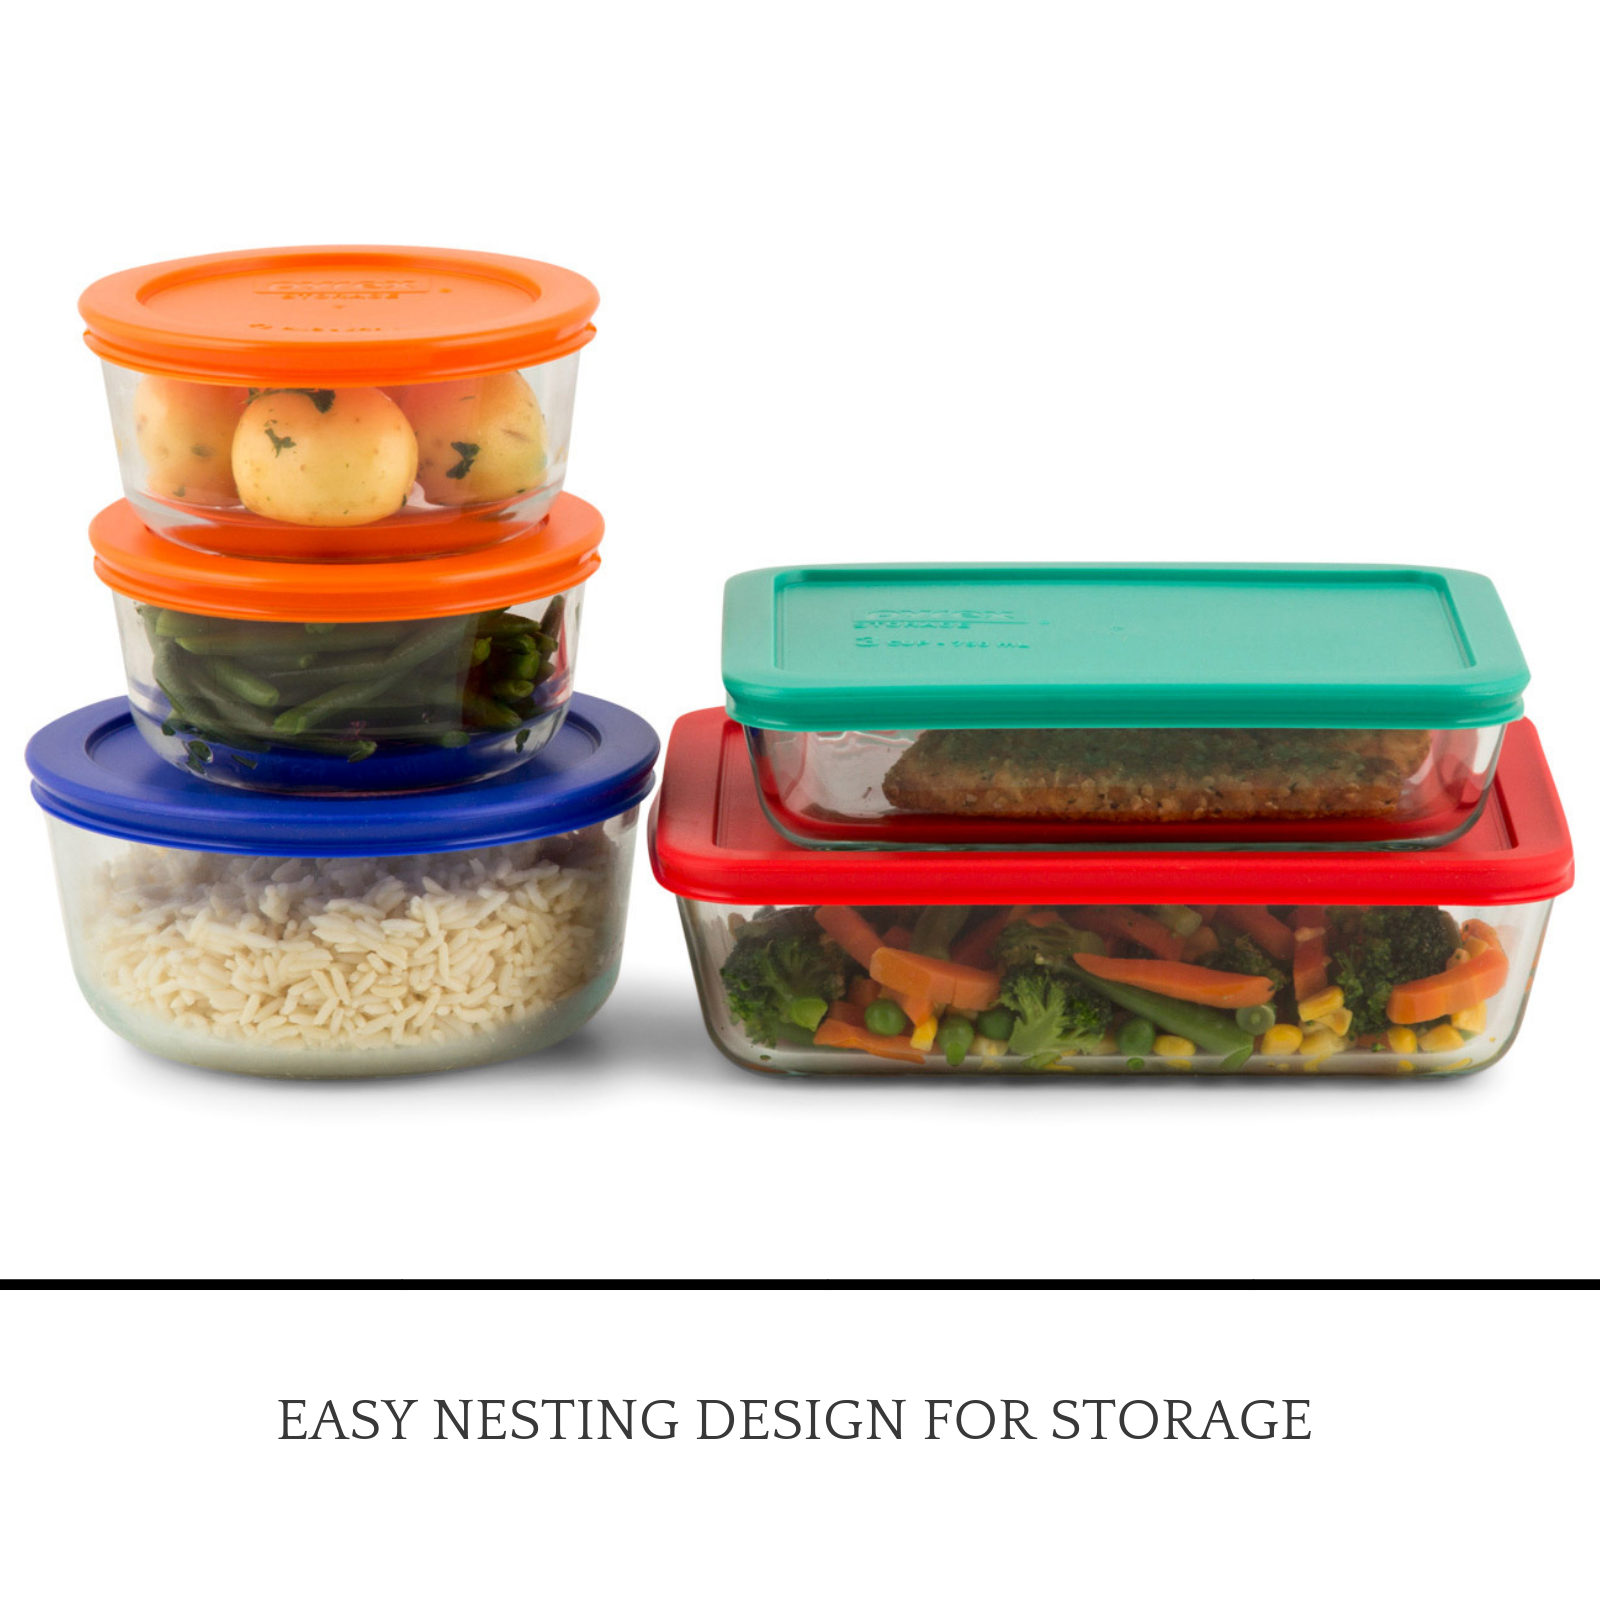 ab86f841b46c Details about New Pyrex Snapware Glass Lunch Containers Food Storage 10  Piece Set Freezer Oven